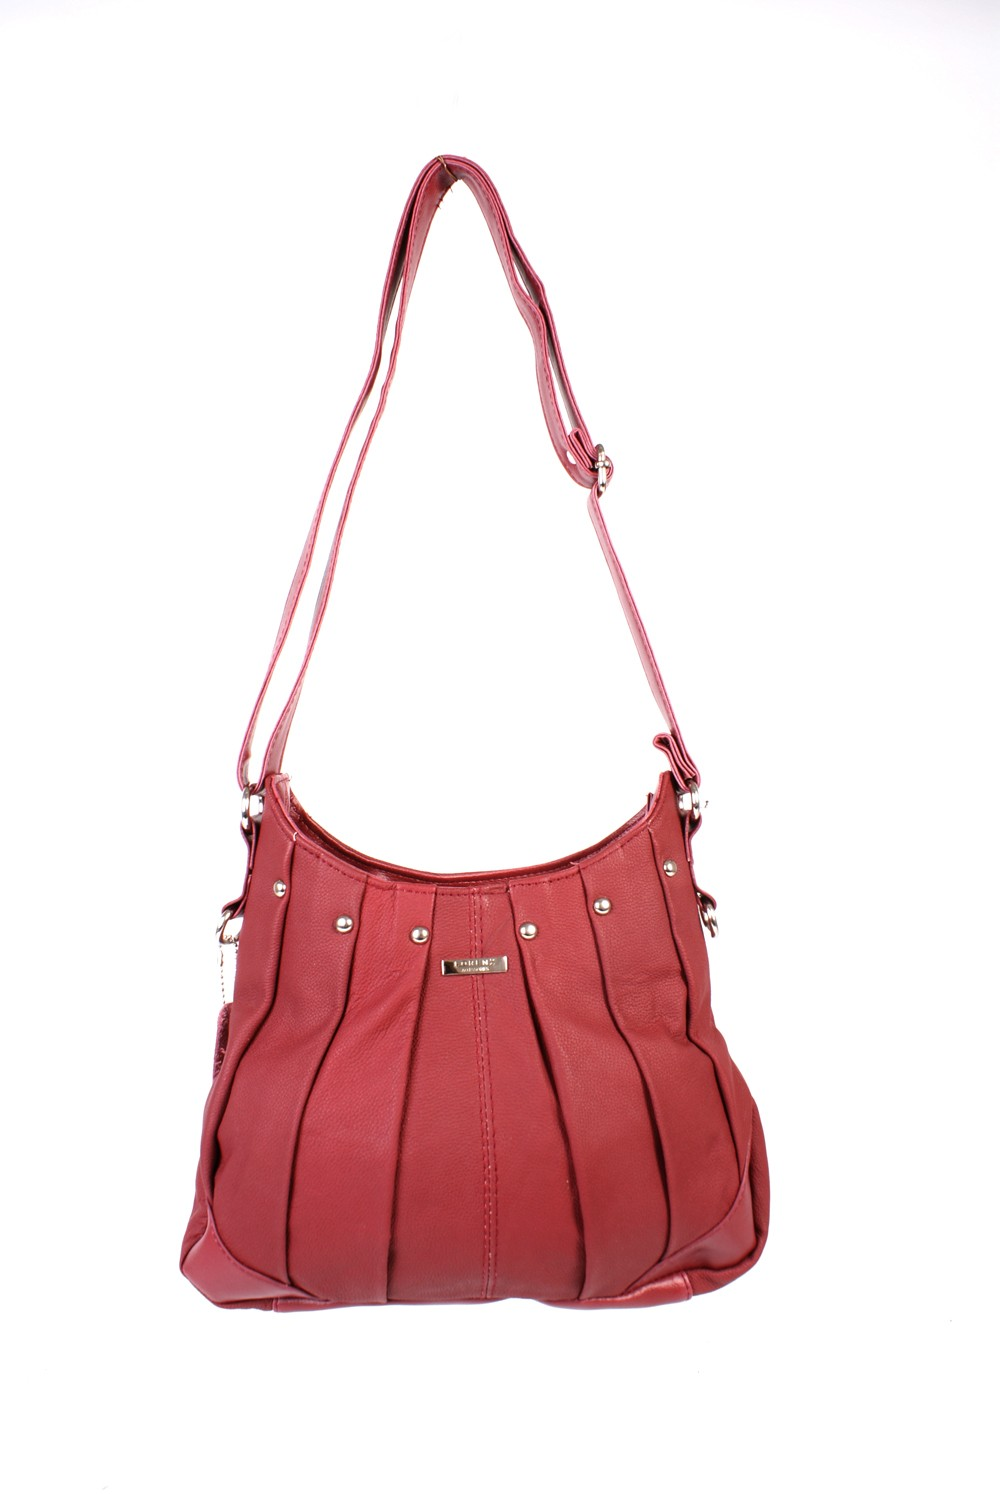 3731 DARK RED C.Hide Bag